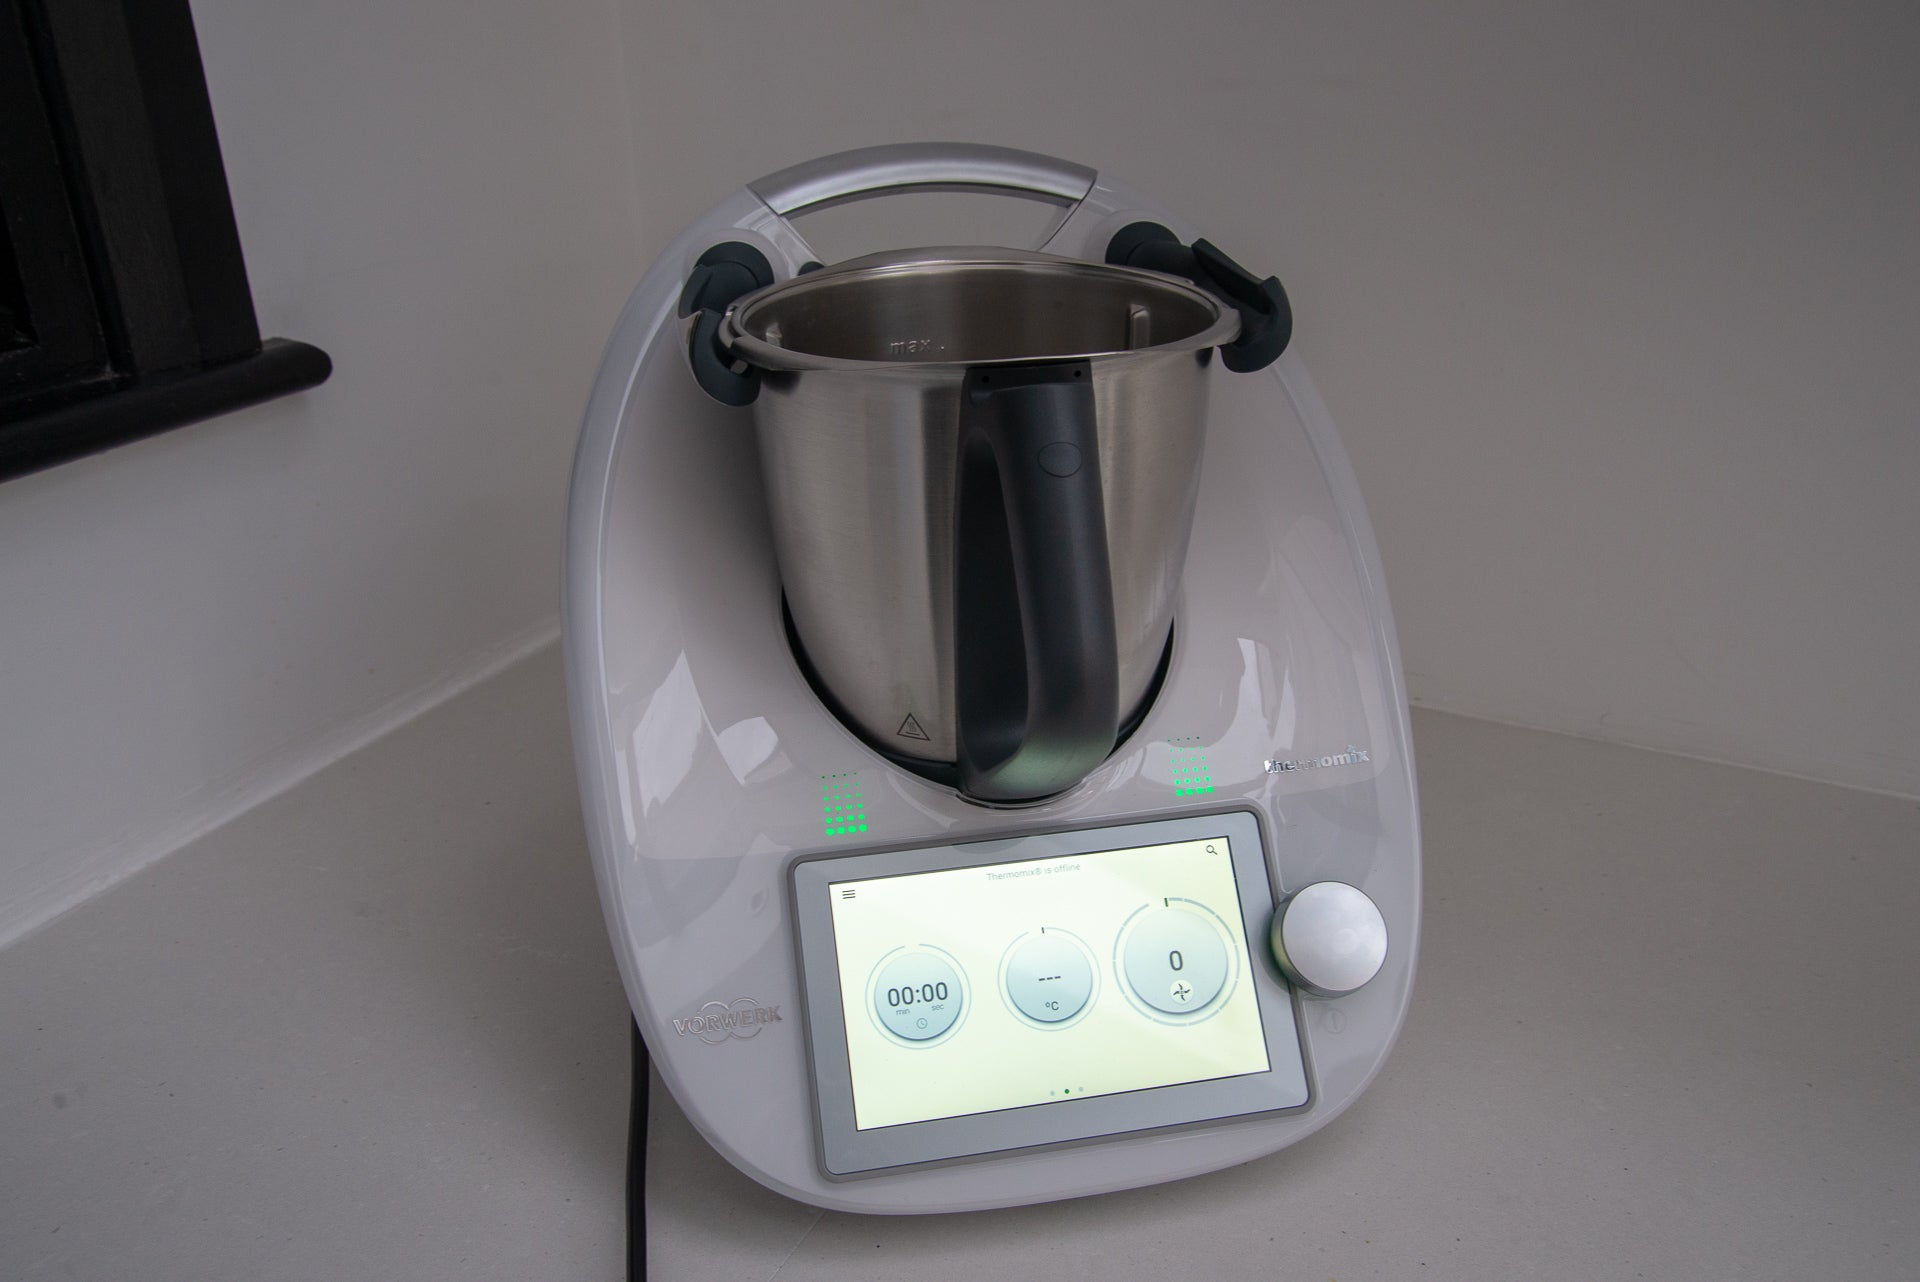 Thermomix Tm6 Review The Ultimate Kitchen Gadget Trusted Reviews